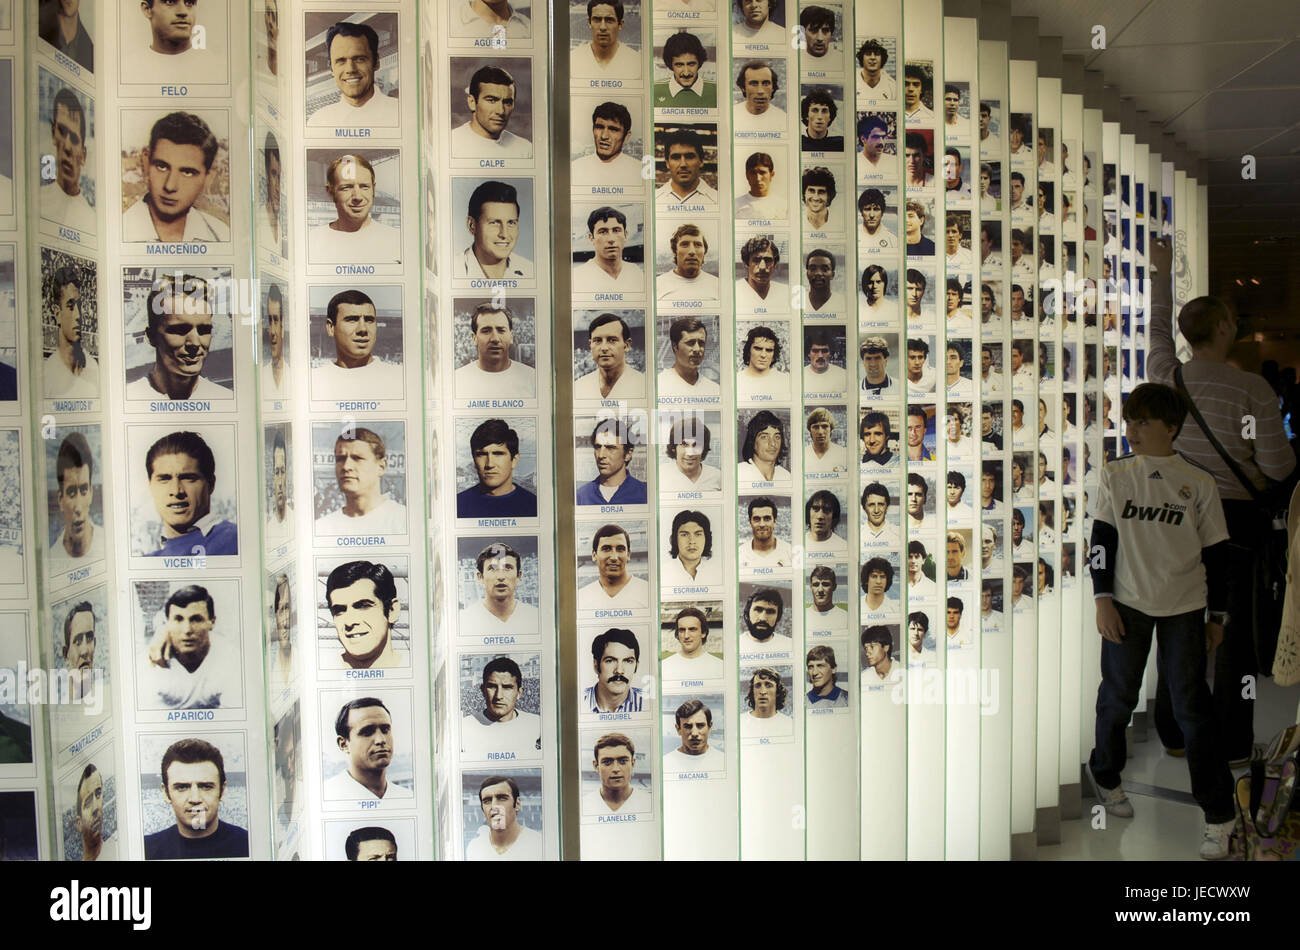 Spain, Madrid, Santiago Bernabeu stadium, Real Madrid museum, photo wall, - Stock Image